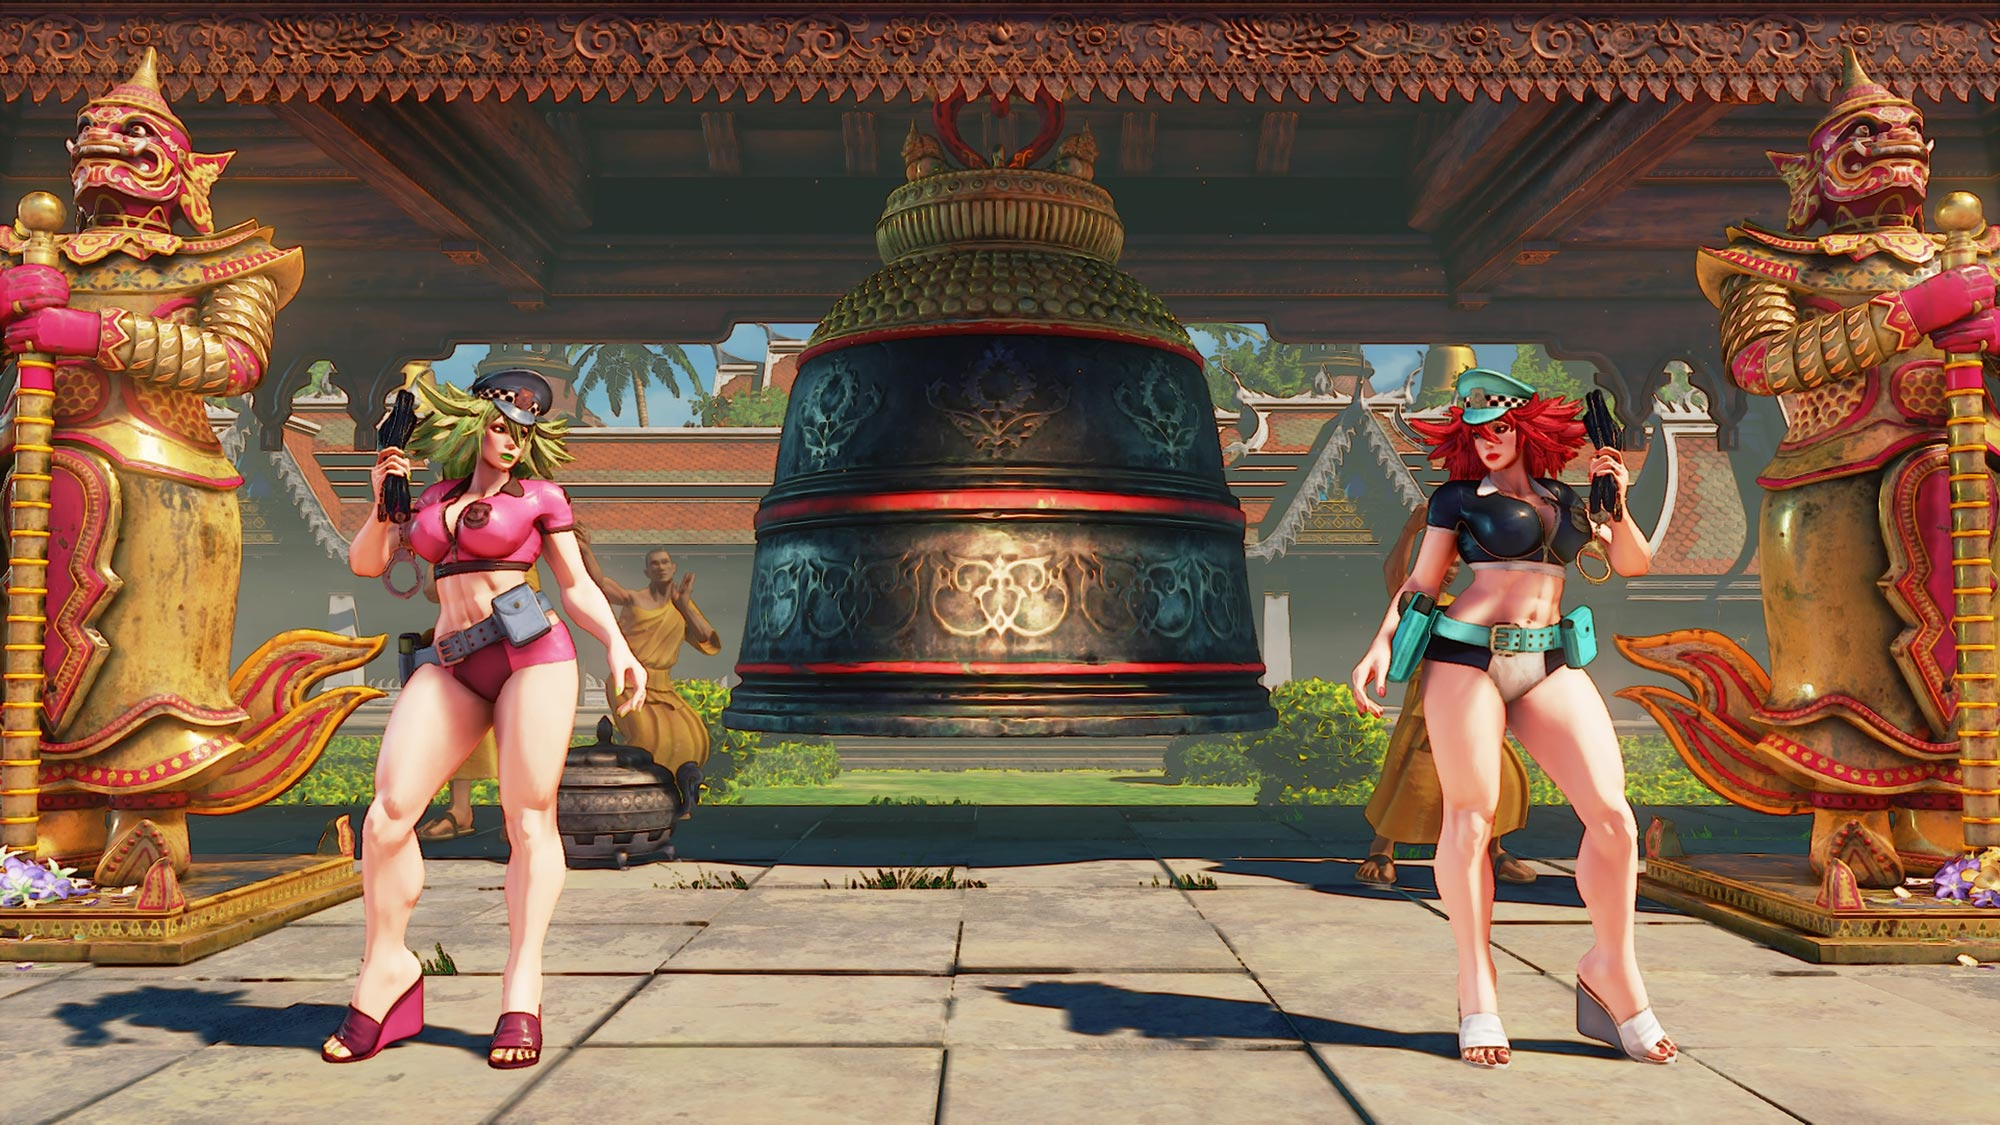 Poison's costume colors in Street Fighter 5 21 out of 22 image gallery